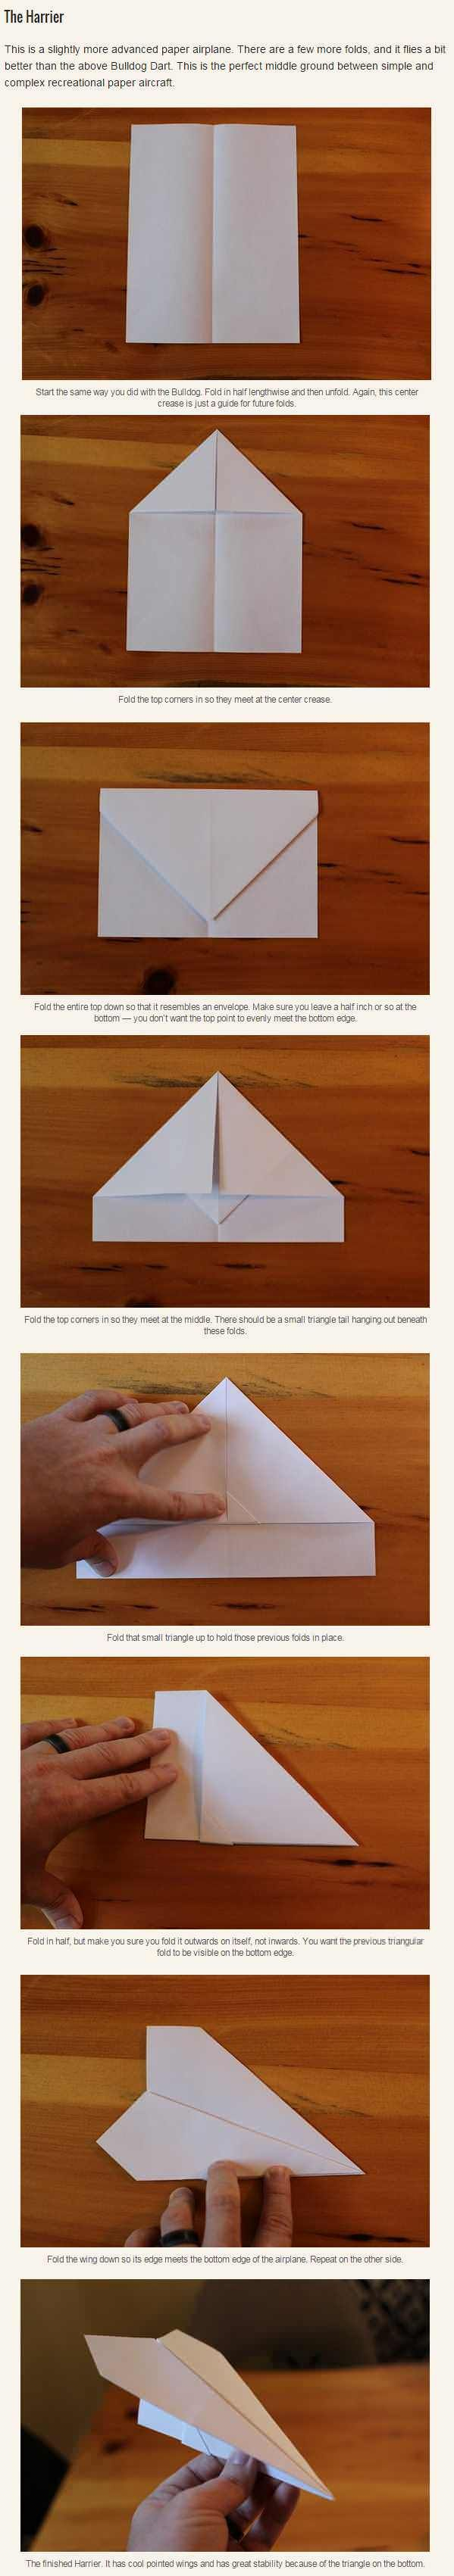 Some paper airplaney goodness for ya imgur origami pinterest